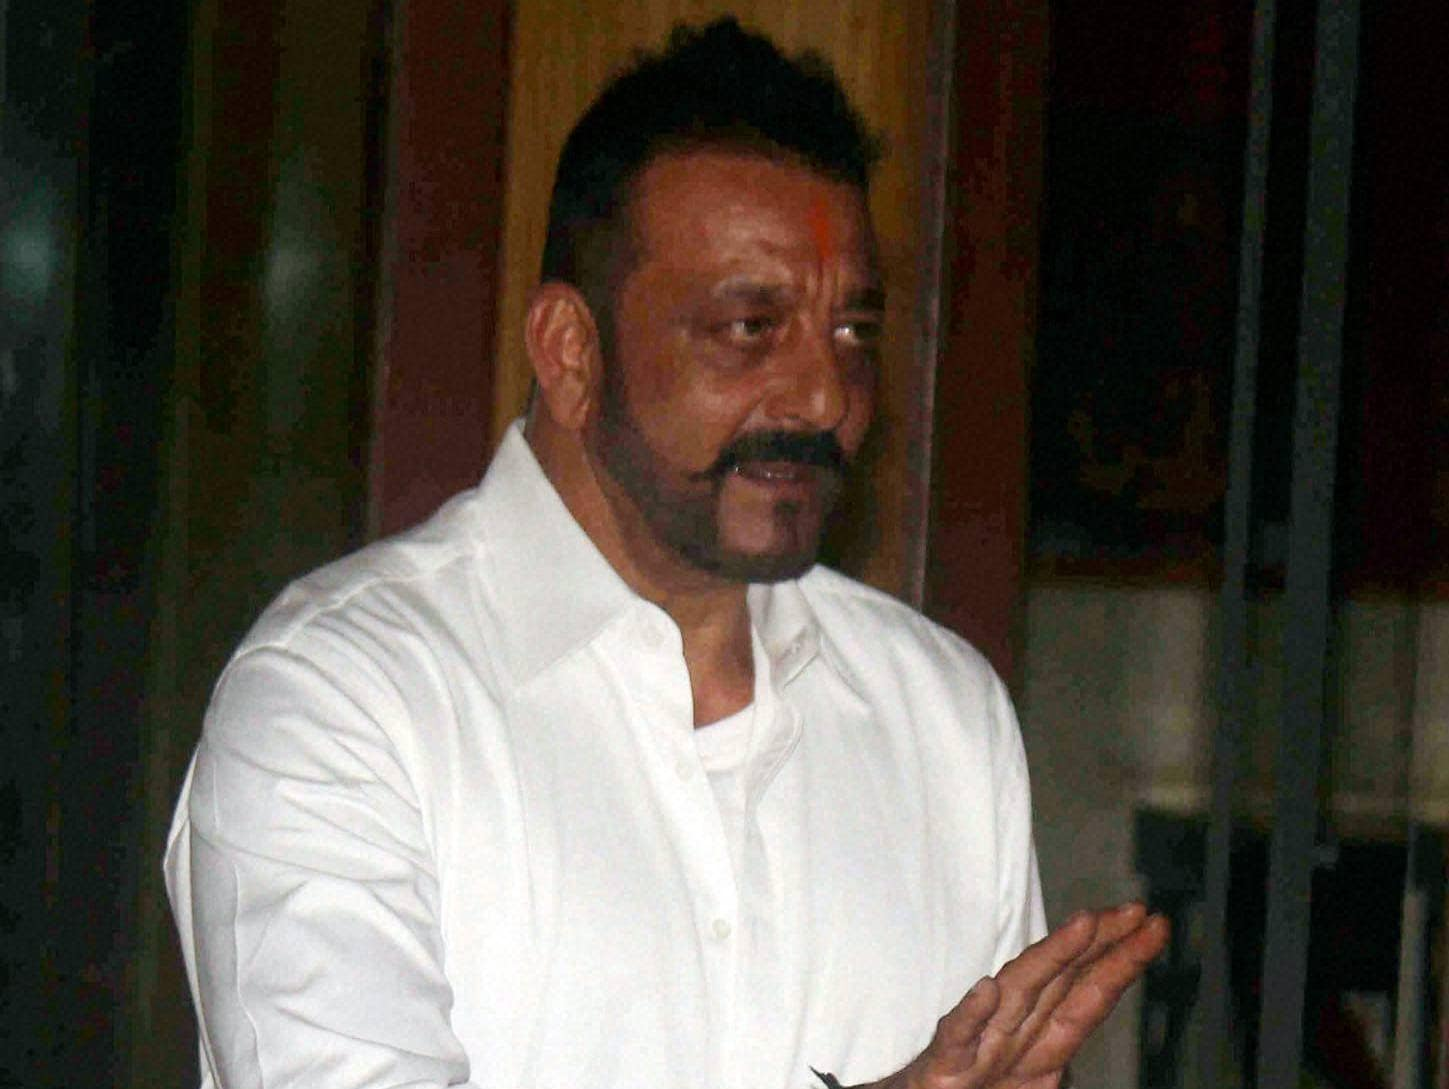 Sanjay Dutt, Yerwada Jail, Sanjay Dutt Released, 30 Day Furlough, Sanjay Dutt daughter's nose surgery, Mumbai